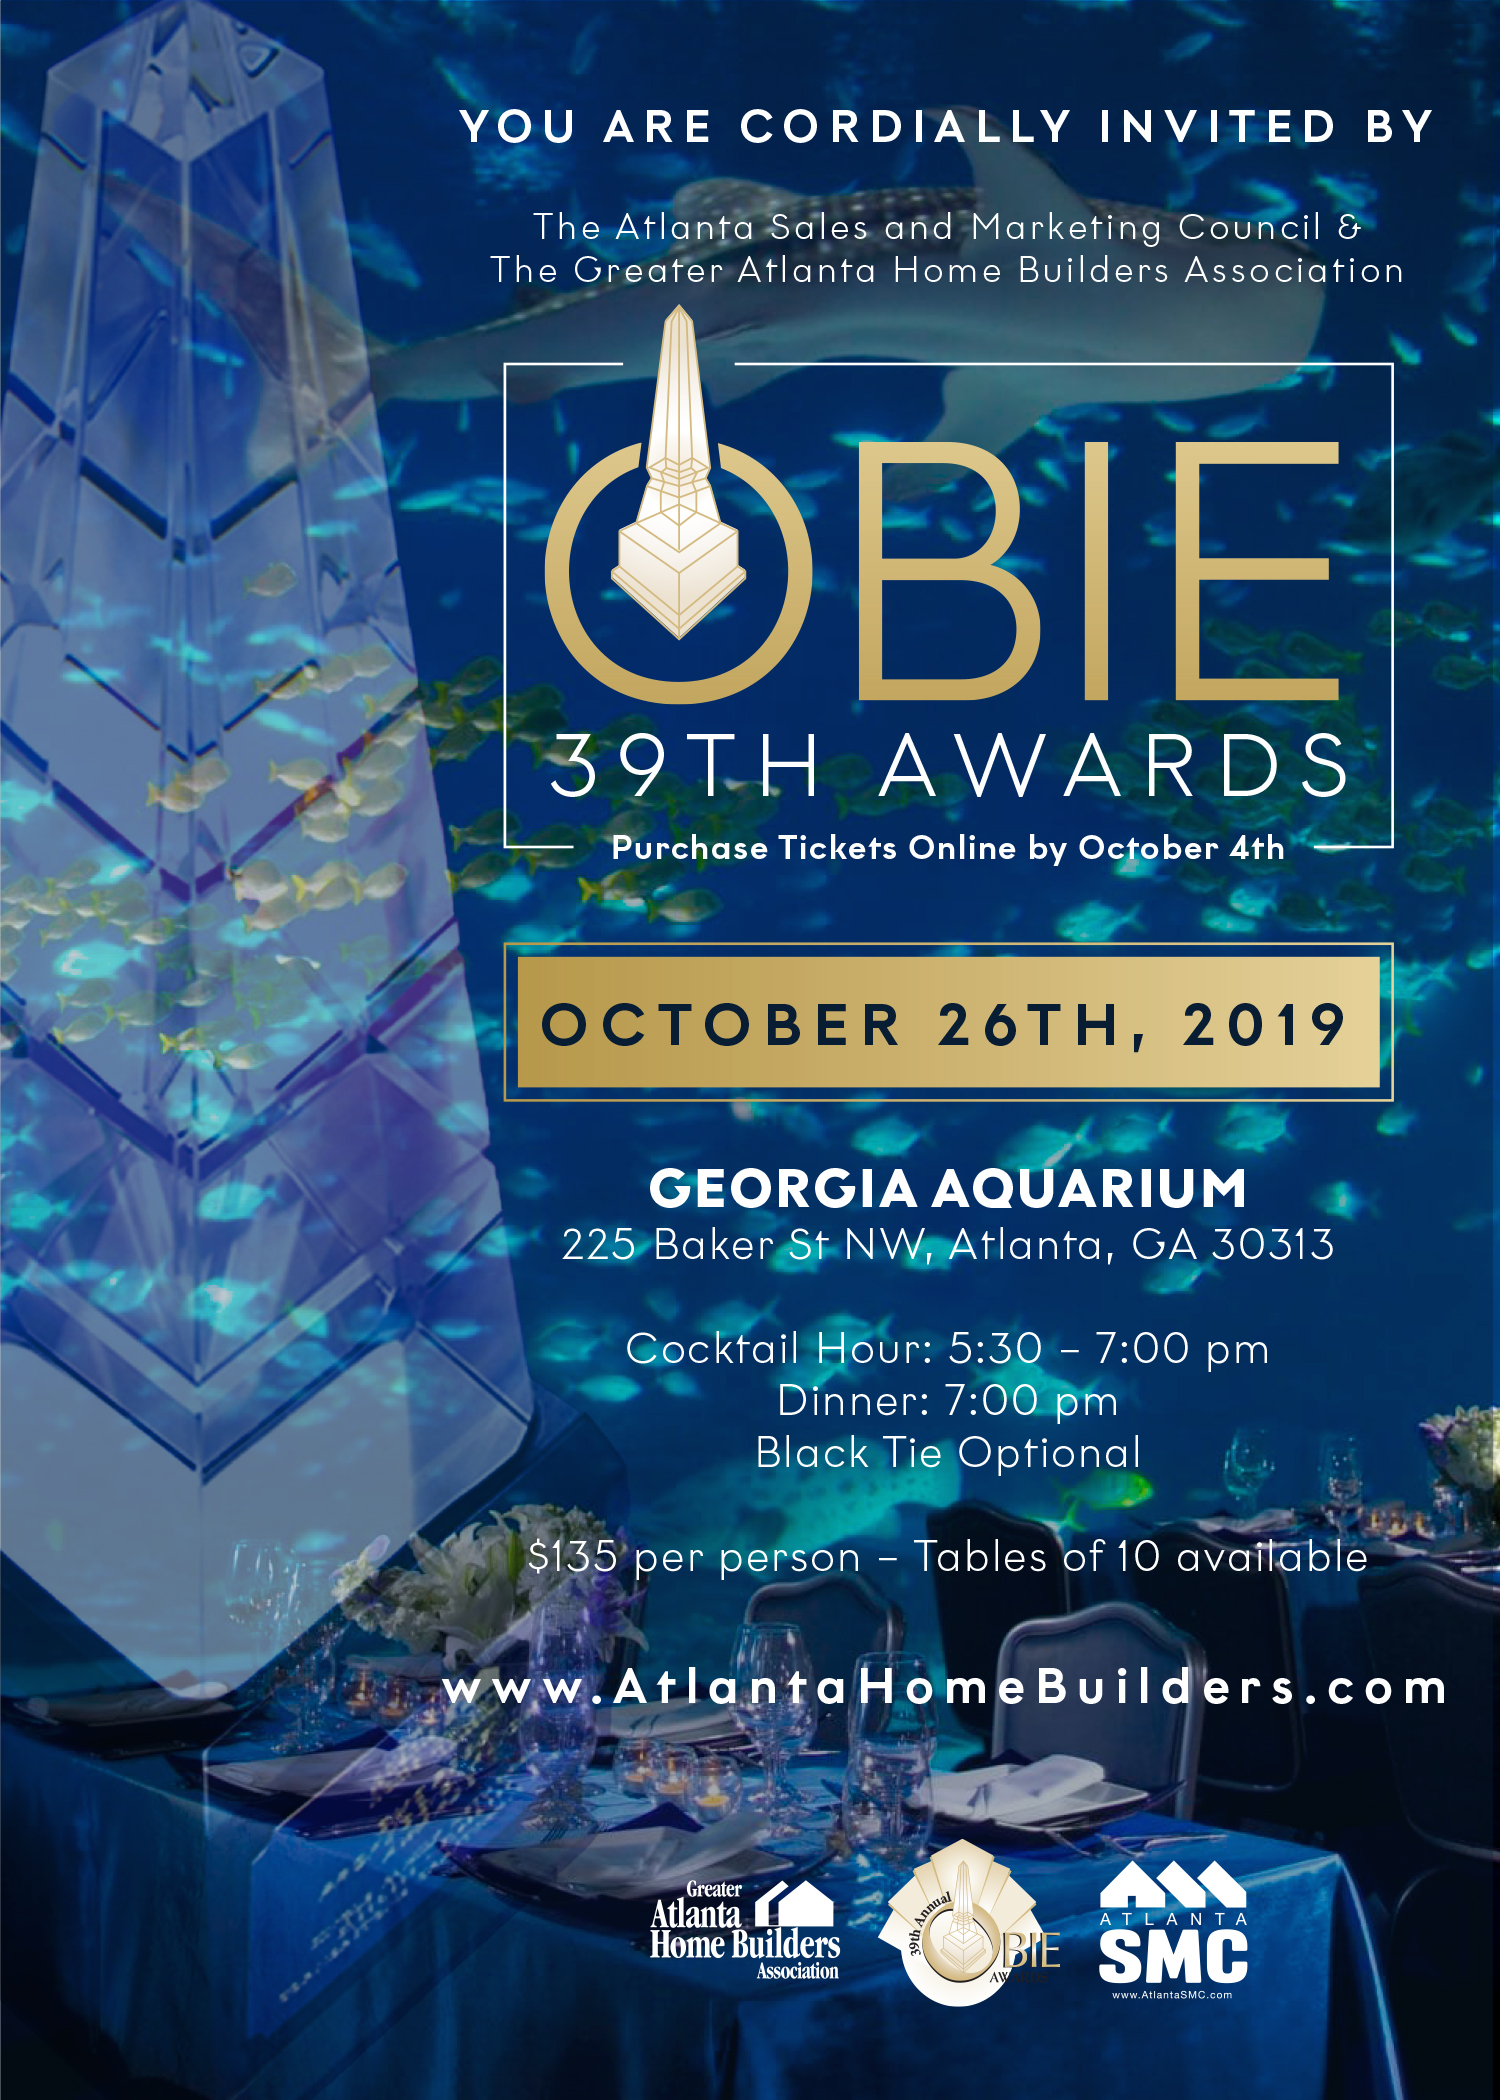 Final Chance to Purchase 39th Annual OBIE Awards Tickets